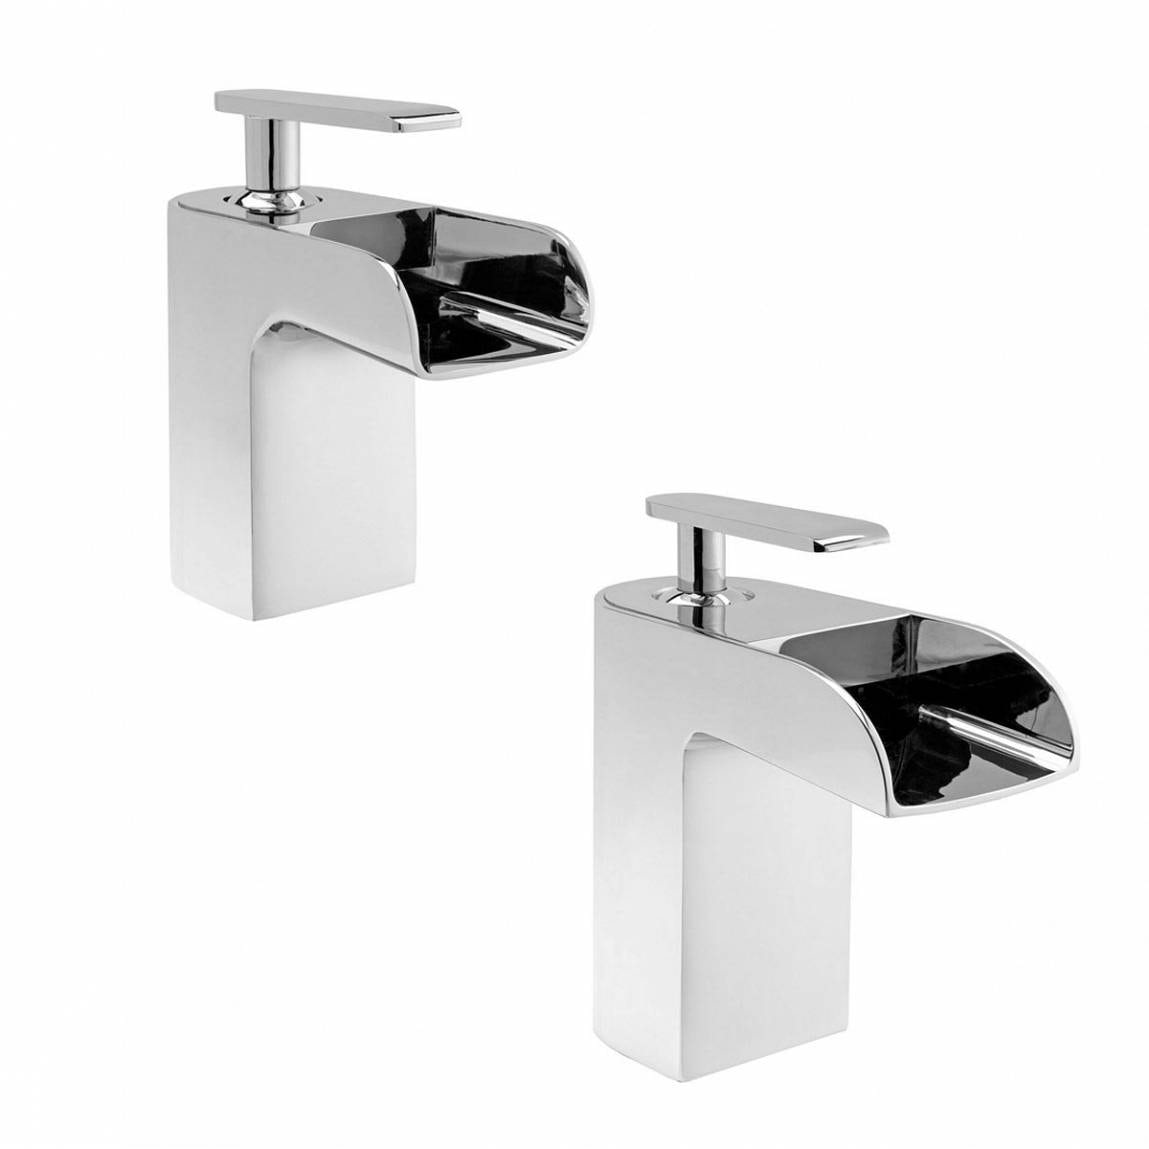 Mode Reinosa basin and bath mixer tap pack